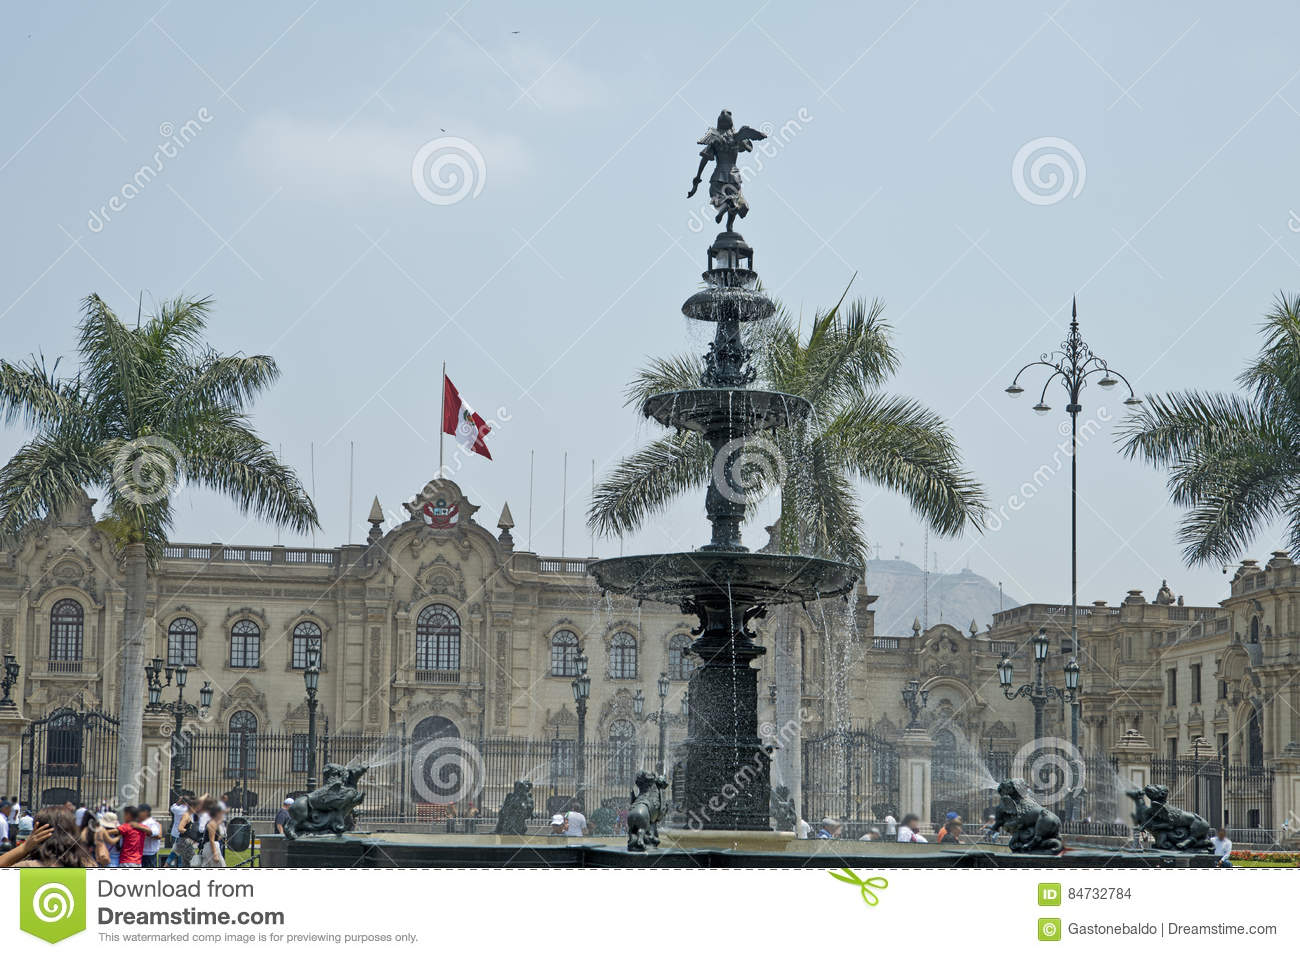 Water fountains lima - Water Fountain And Main Plaza Lima Per